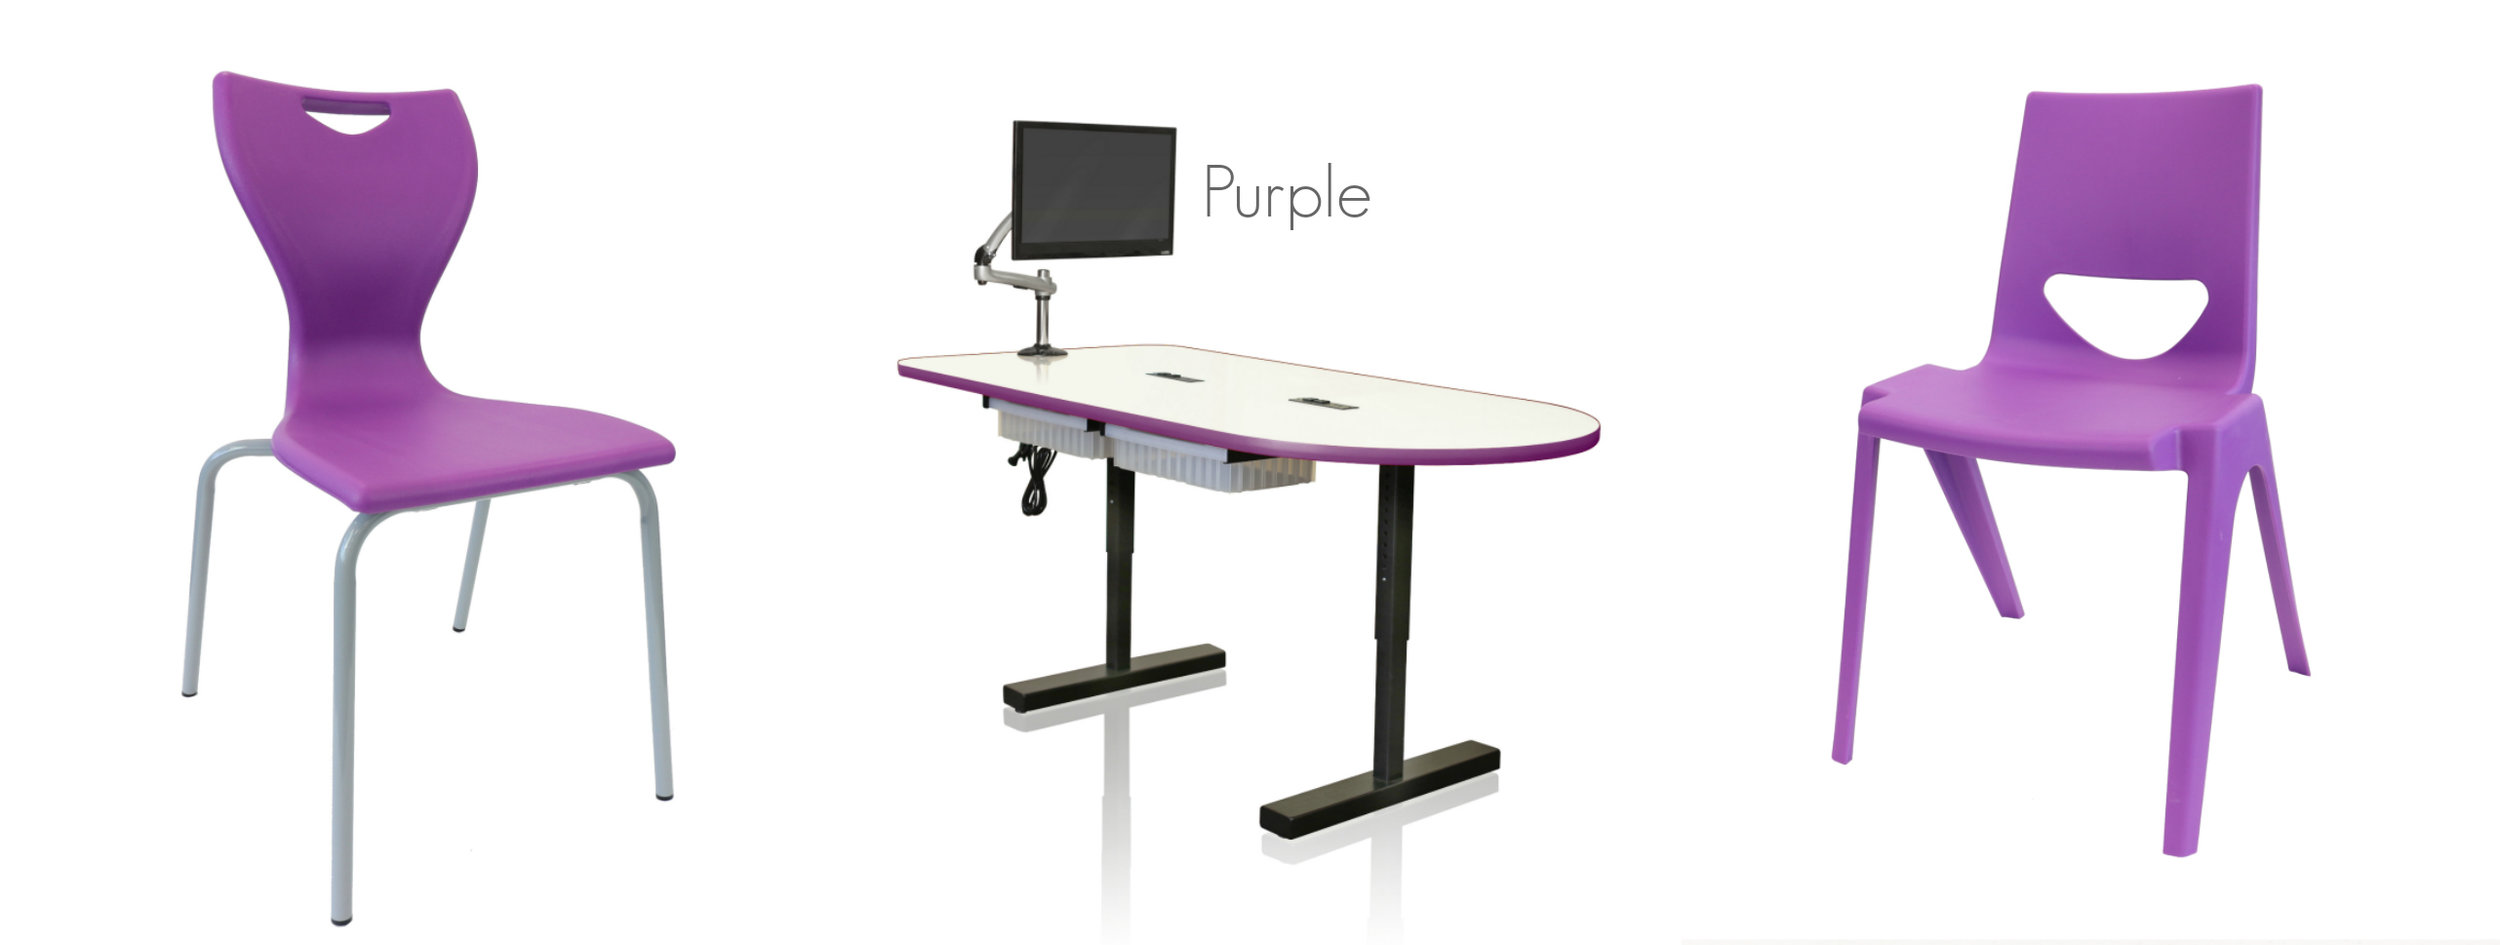 CEF Purple Table and Chairs with name.jpg